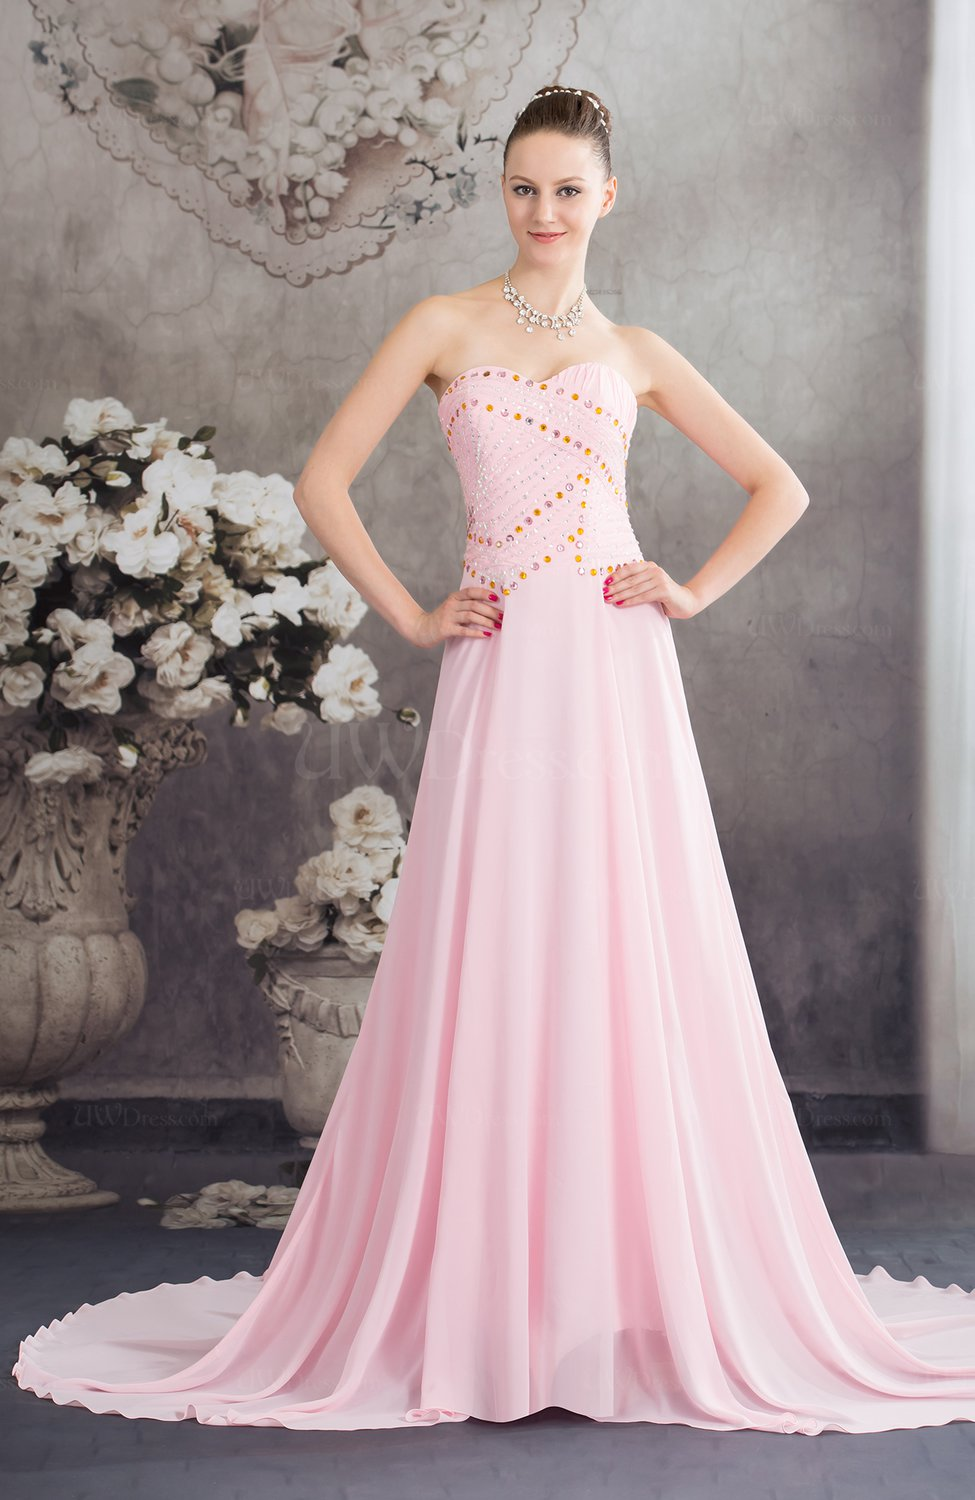 Baby Pink Plain Church A Line Sweetheart Sleeveless Lace